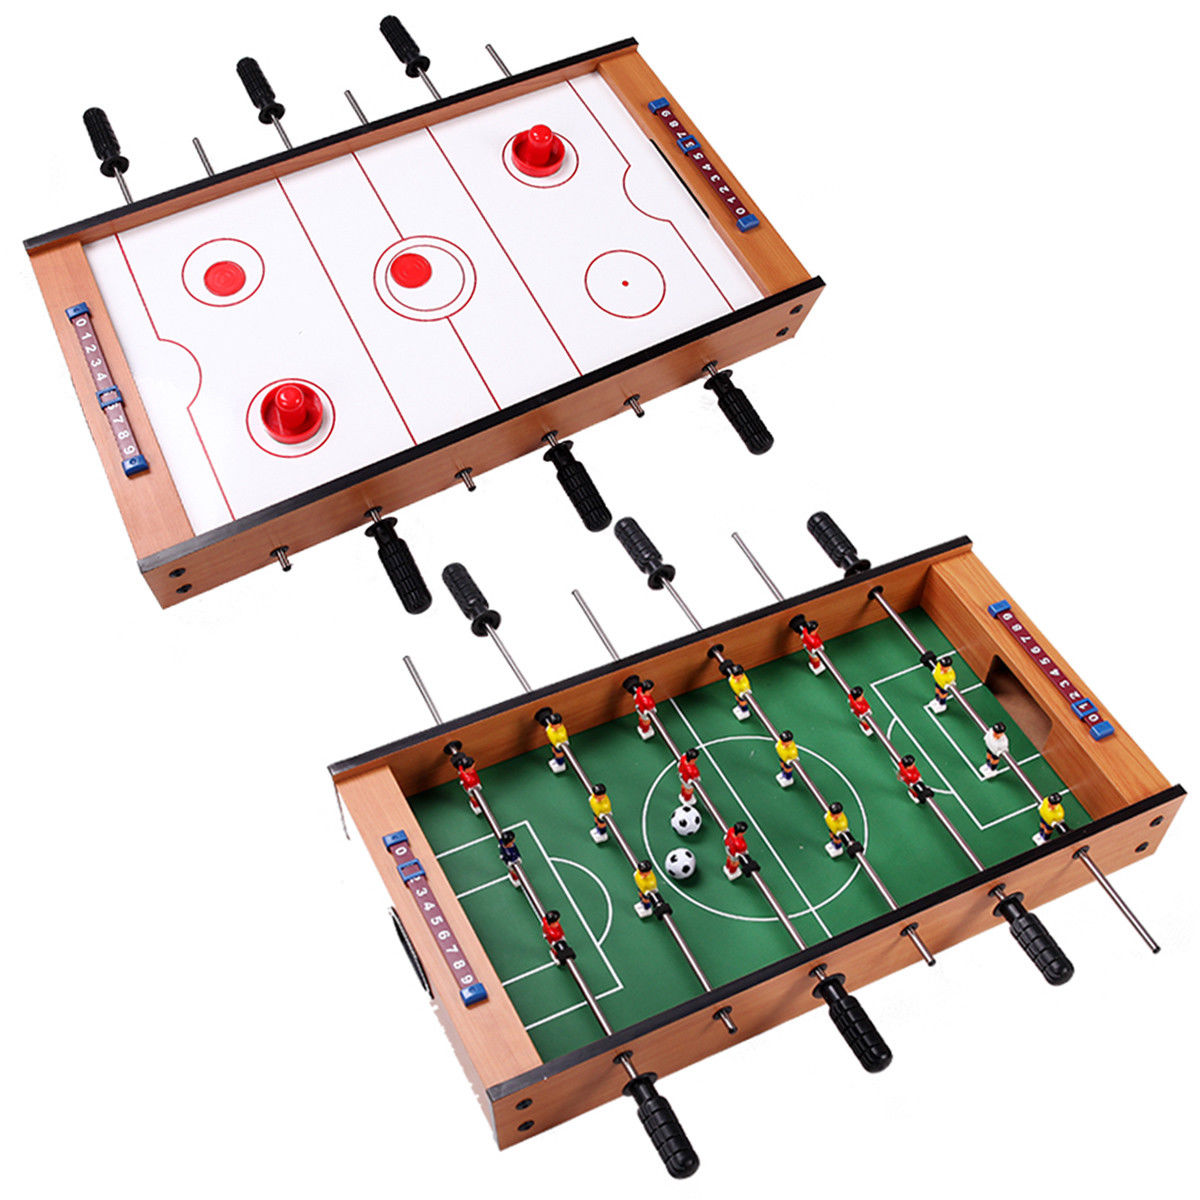 Costway 2 In 1 Table Game Air Hockey Foosball Table Christmas Gift For Kids In Outdoor by Costway